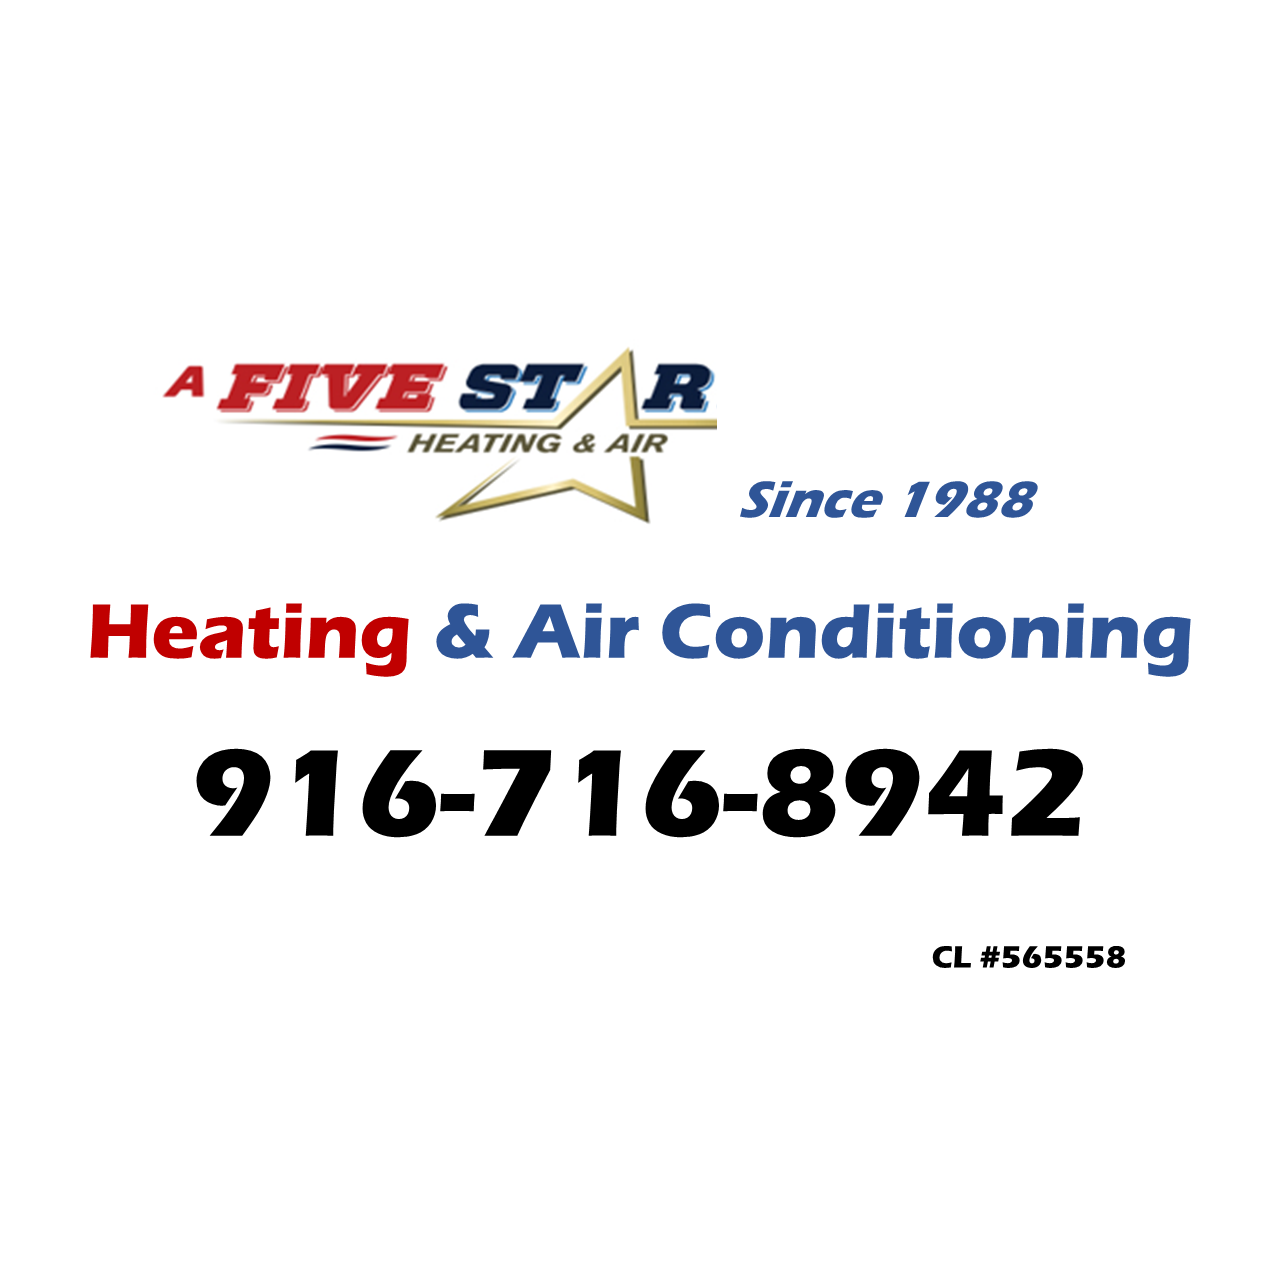 A Five Star Co. Heating & Cooling